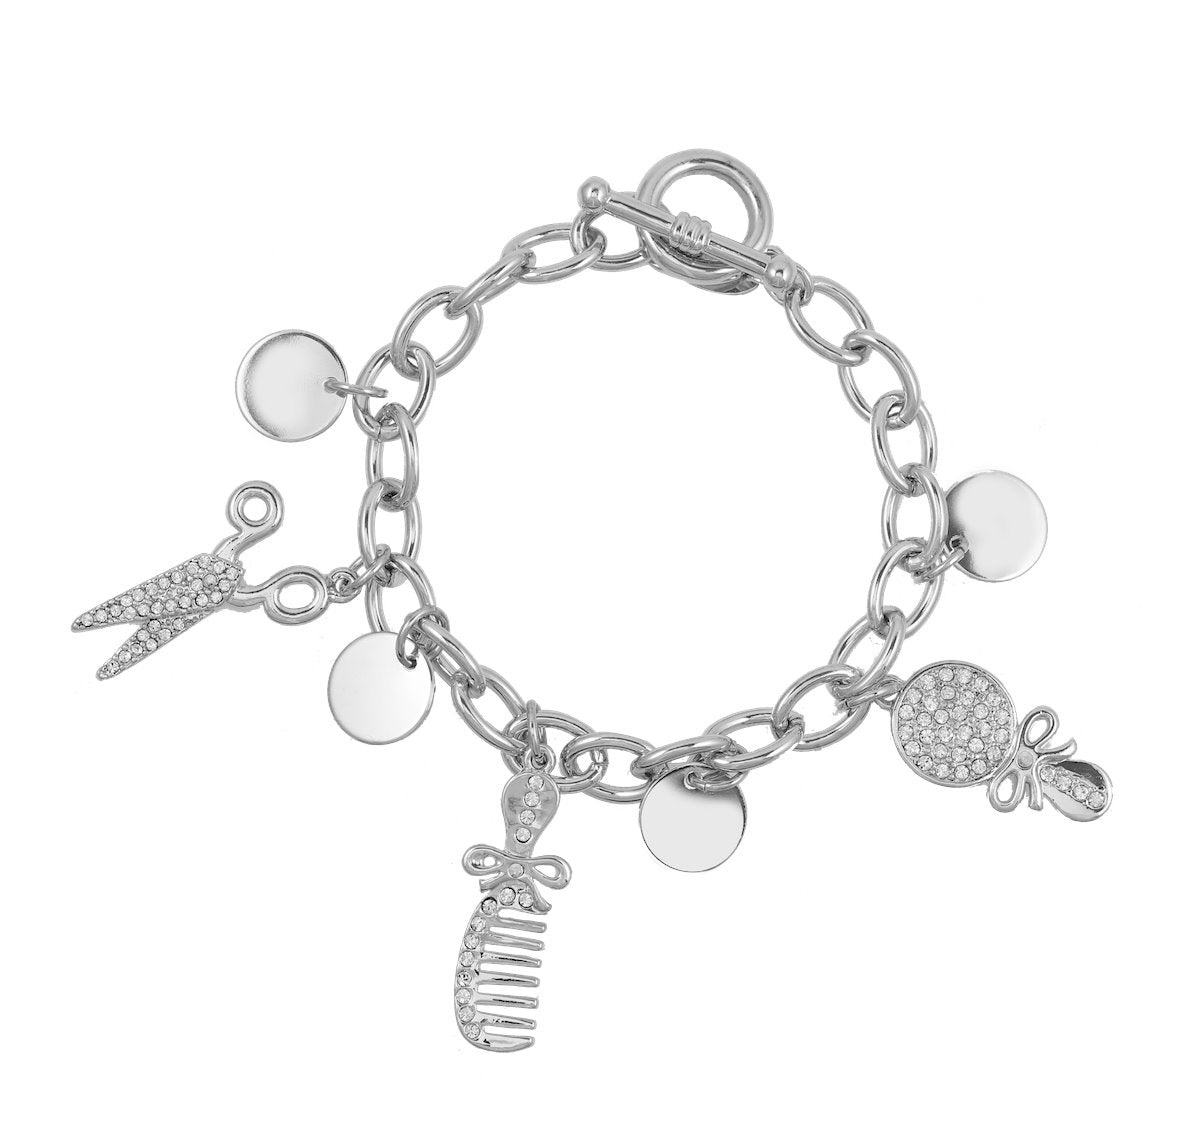 Passion For Beauty Charm Bracelet